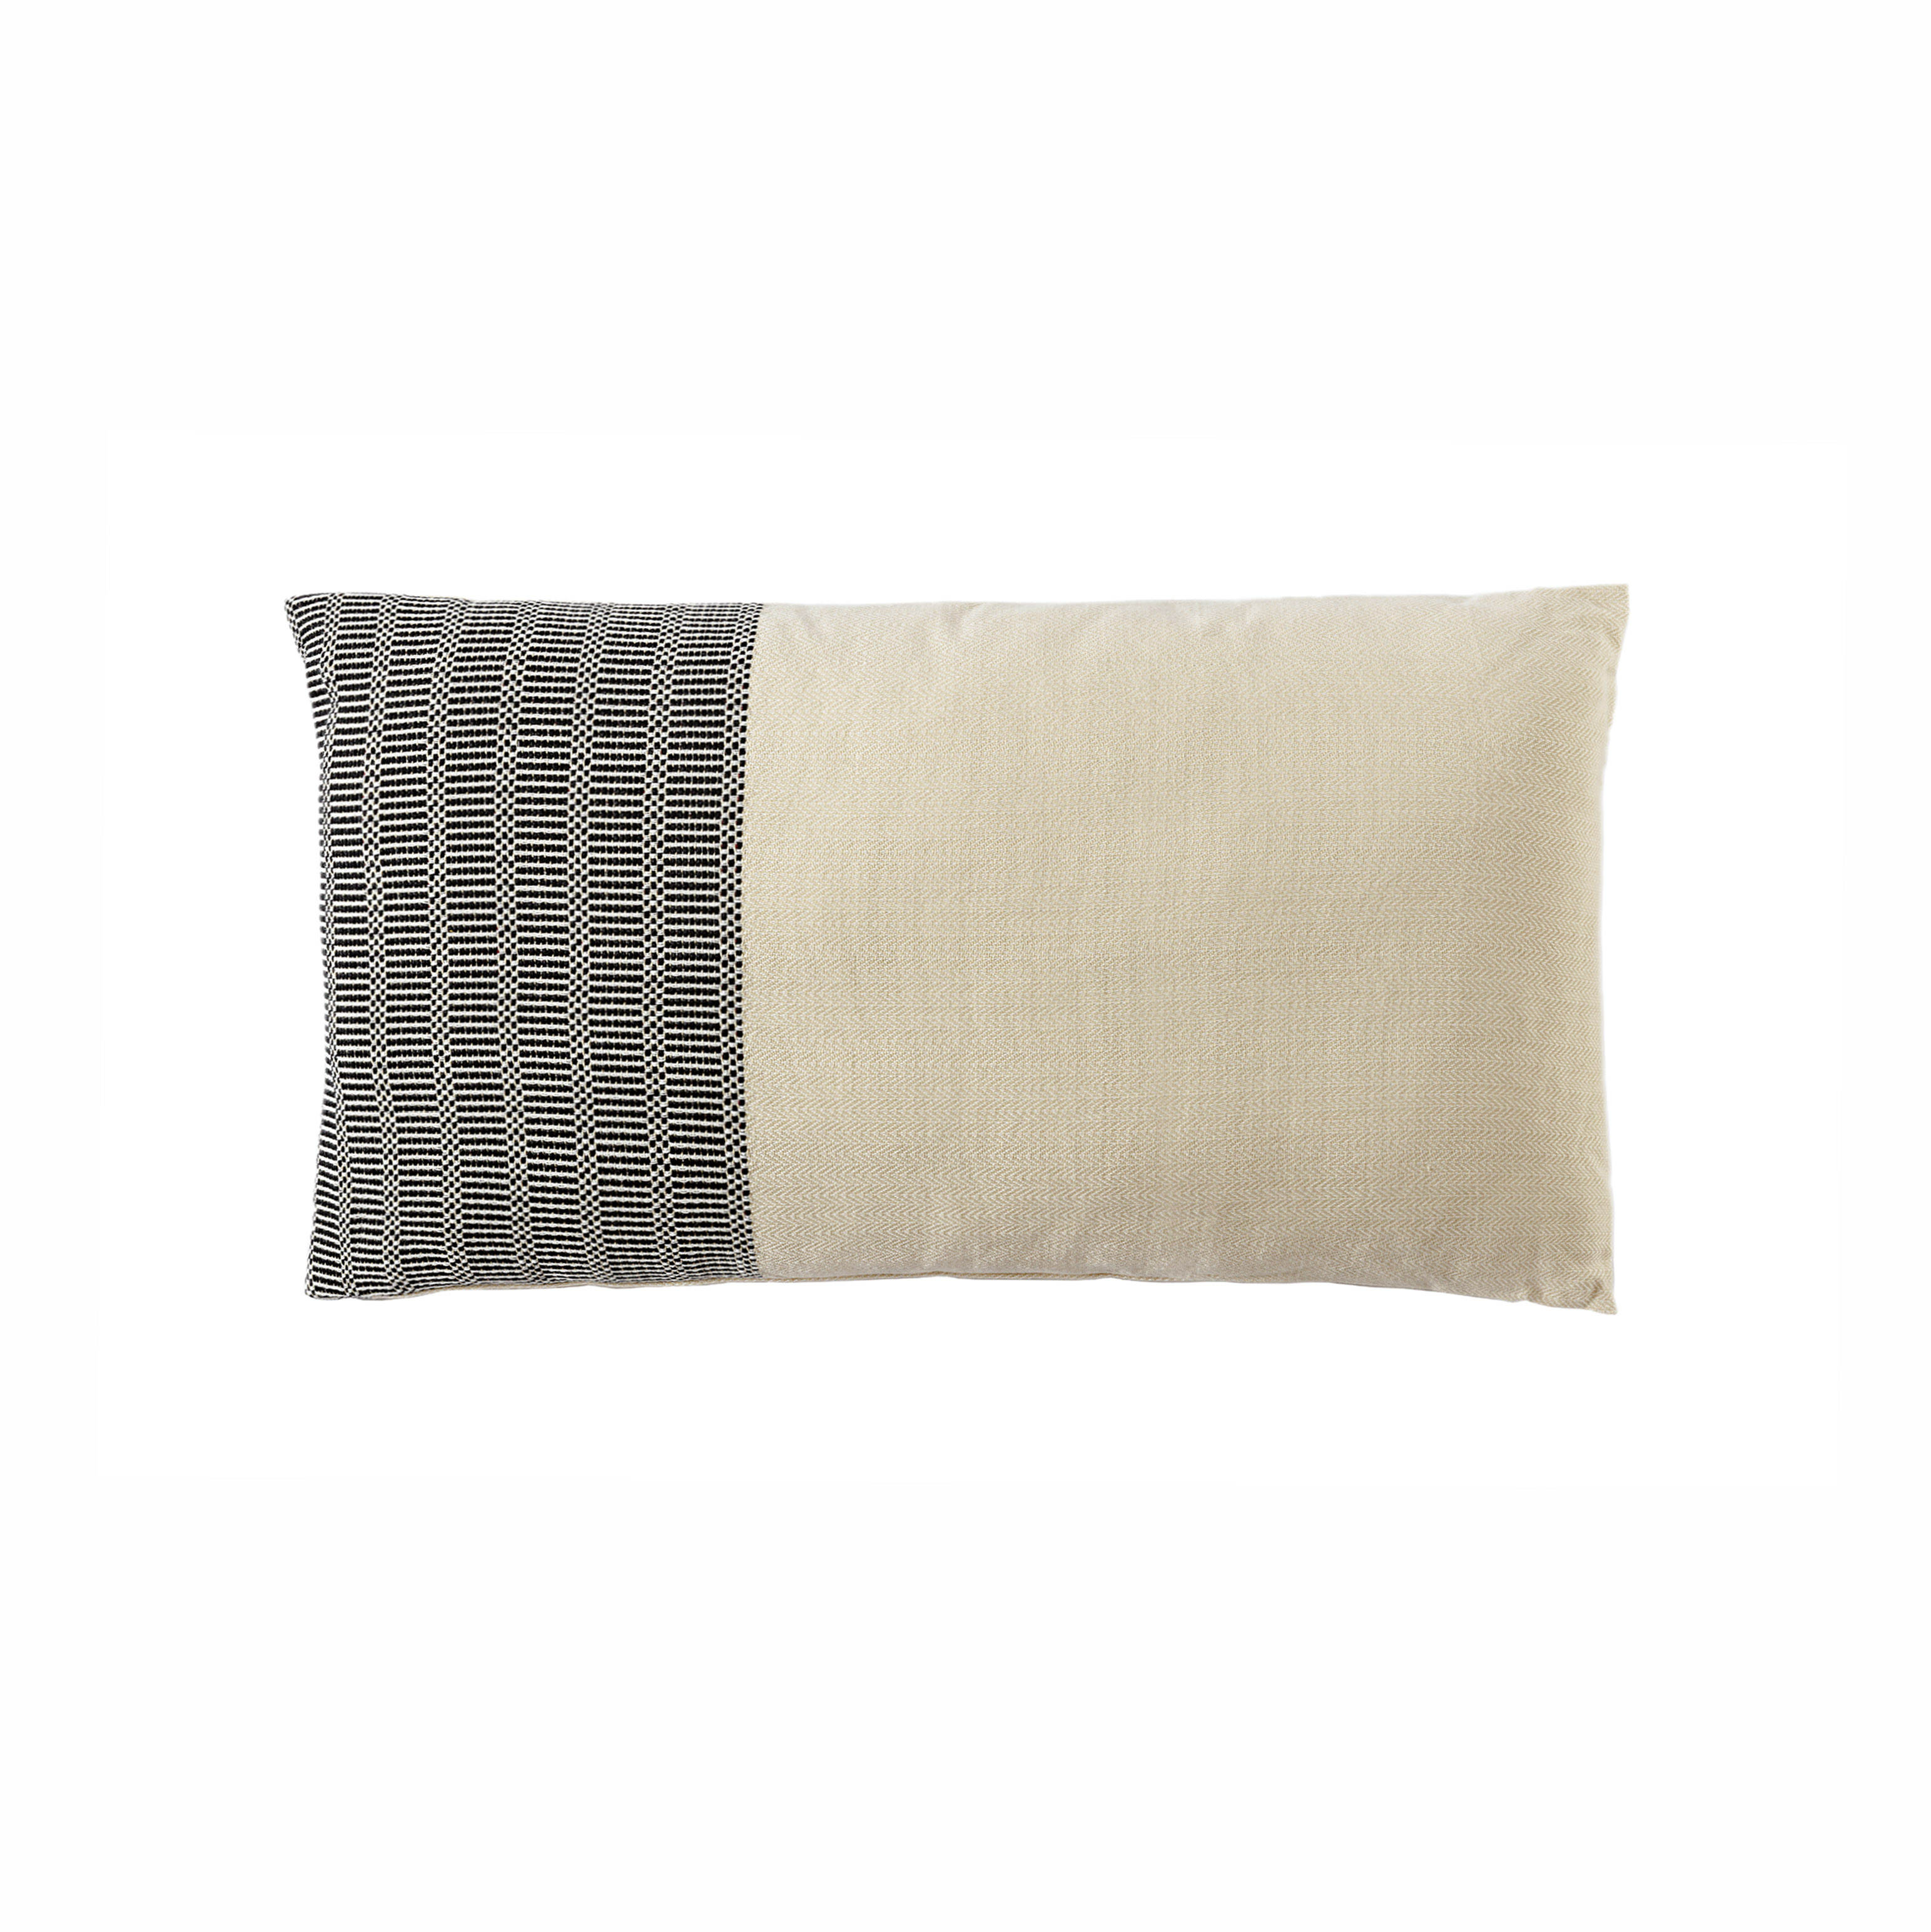 BISACCIA Cushion - Made with Pibiones and Aramu technique 90% wool, 10% cotton   | Matter of Stuff